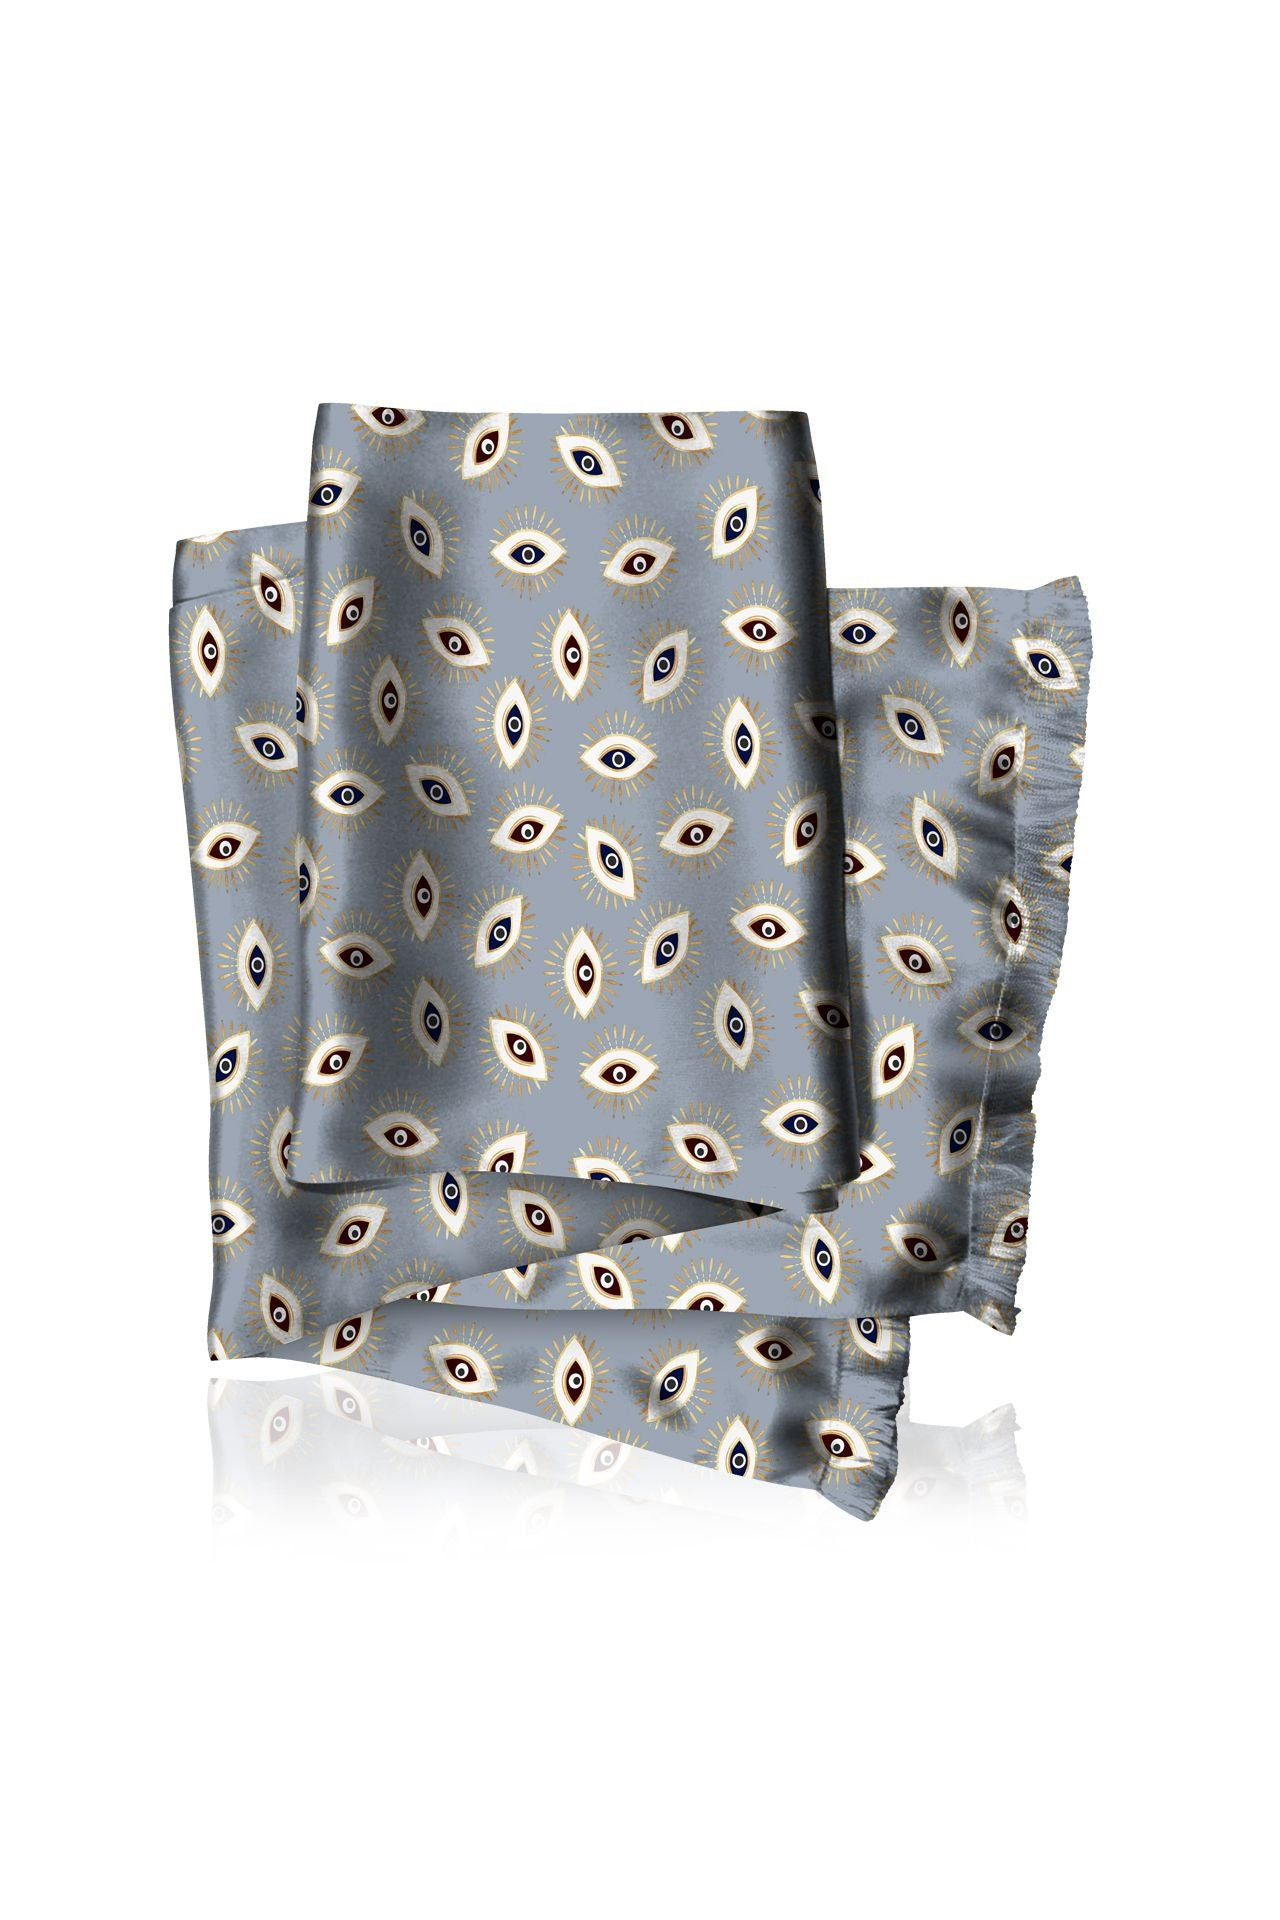 Made with sustainable Silk Cupro Scarves in Evil Eye Grey